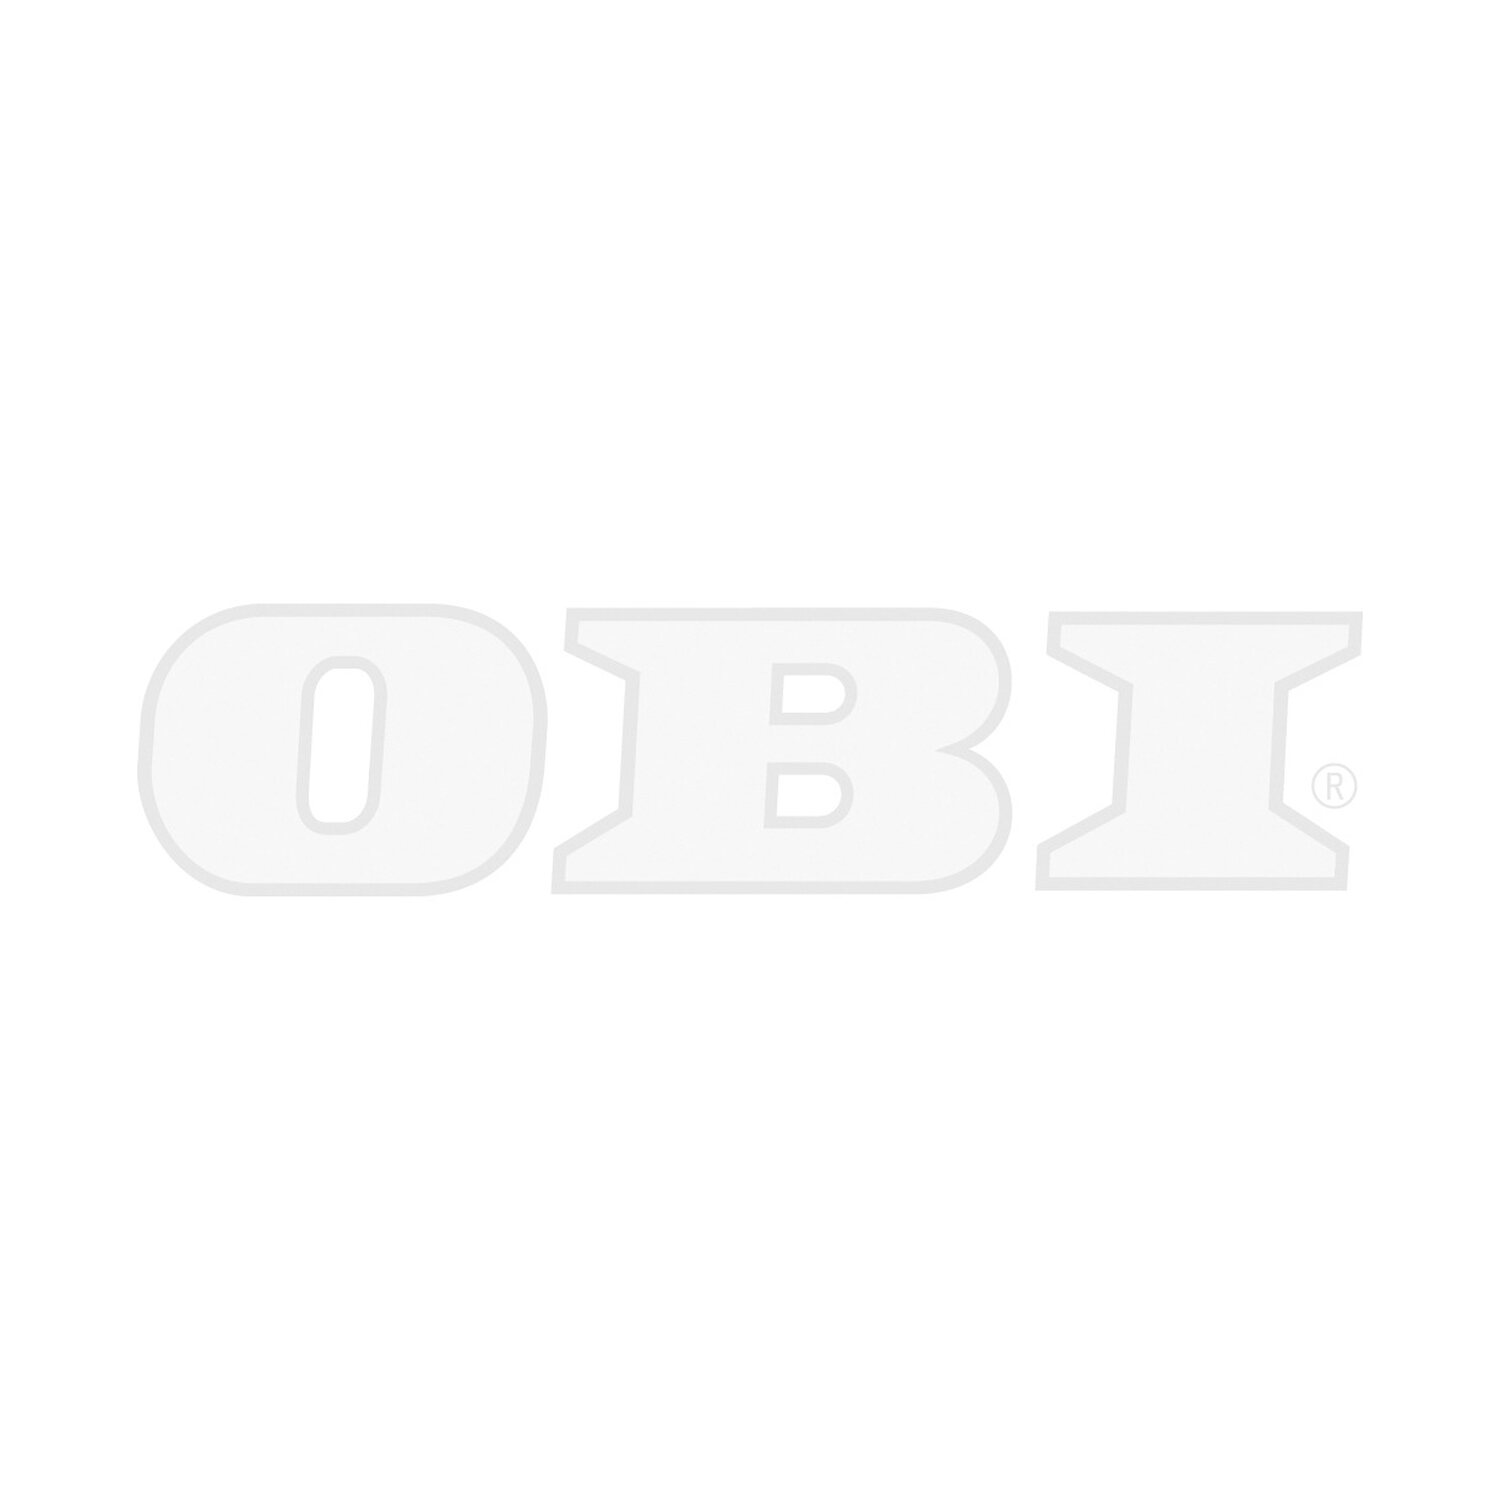 jungle gym holzspielturm mansion kletterger st mit rutsche dunkelgr n kaufen bei obi. Black Bedroom Furniture Sets. Home Design Ideas